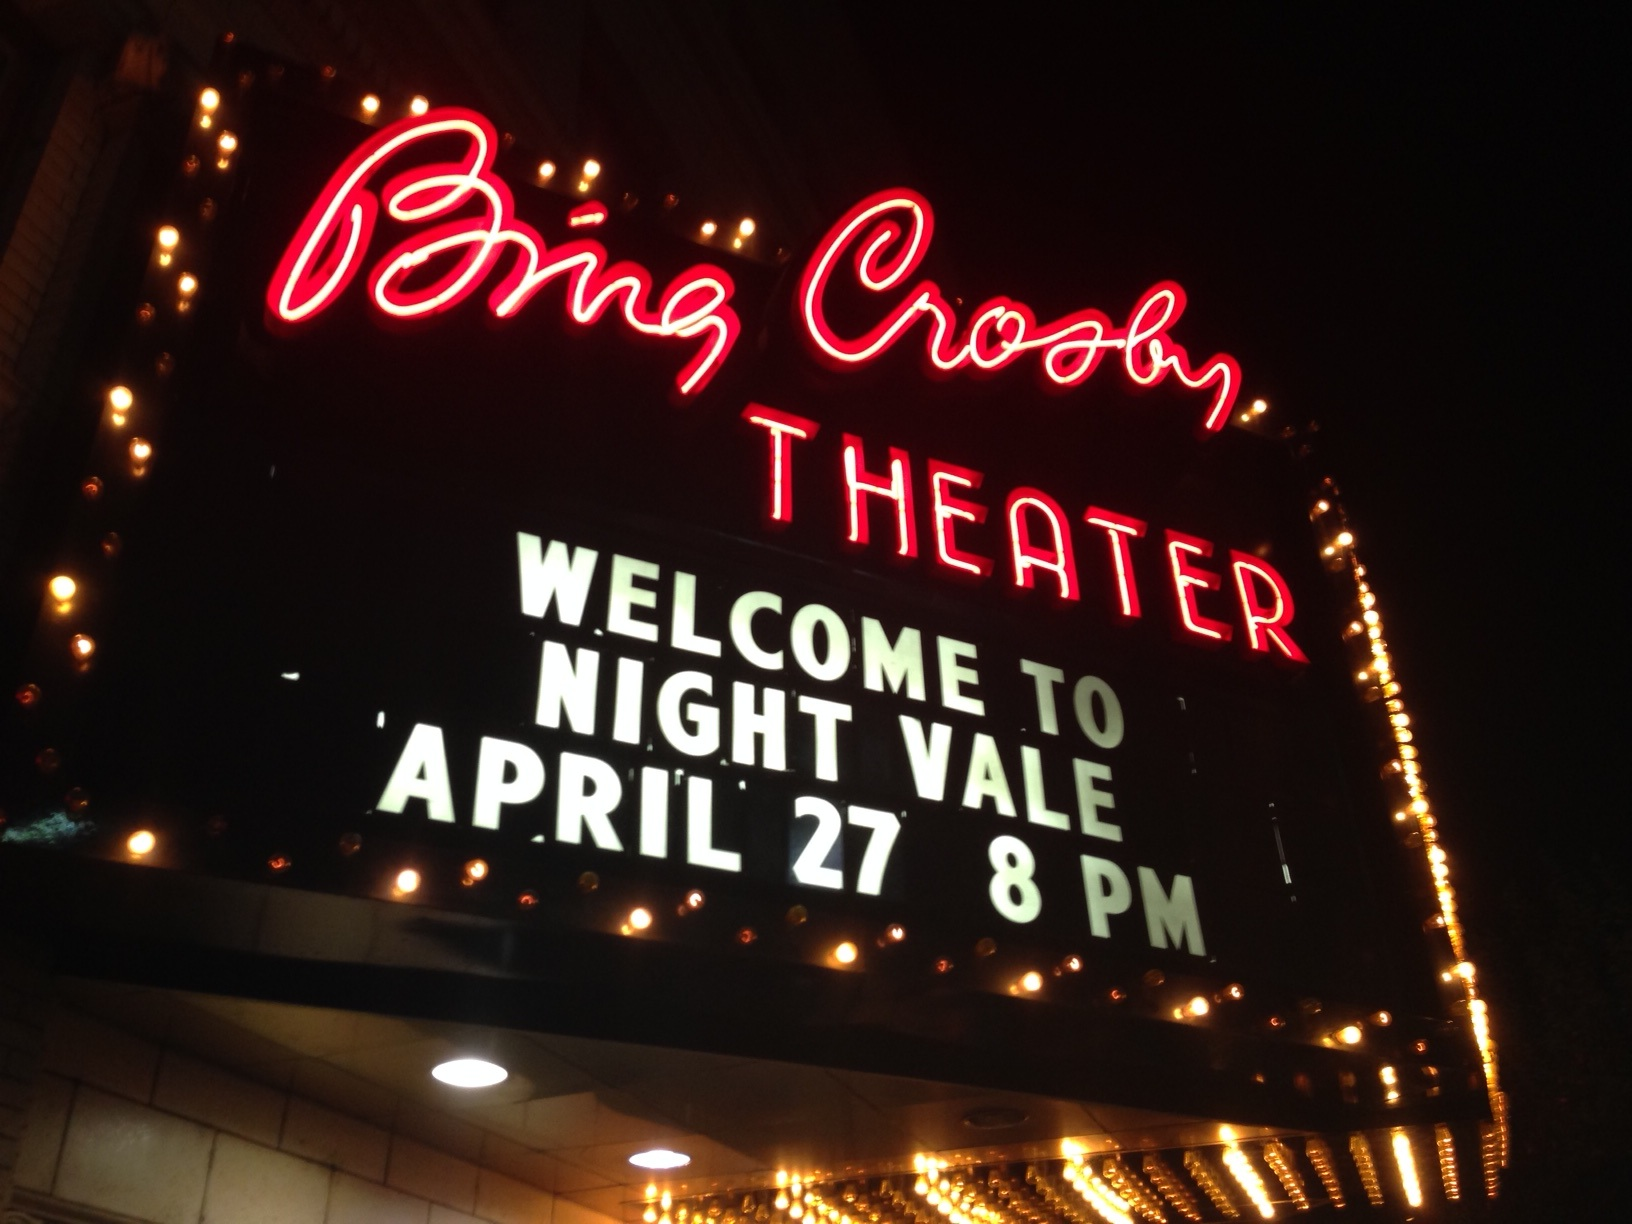 The Bing marquee